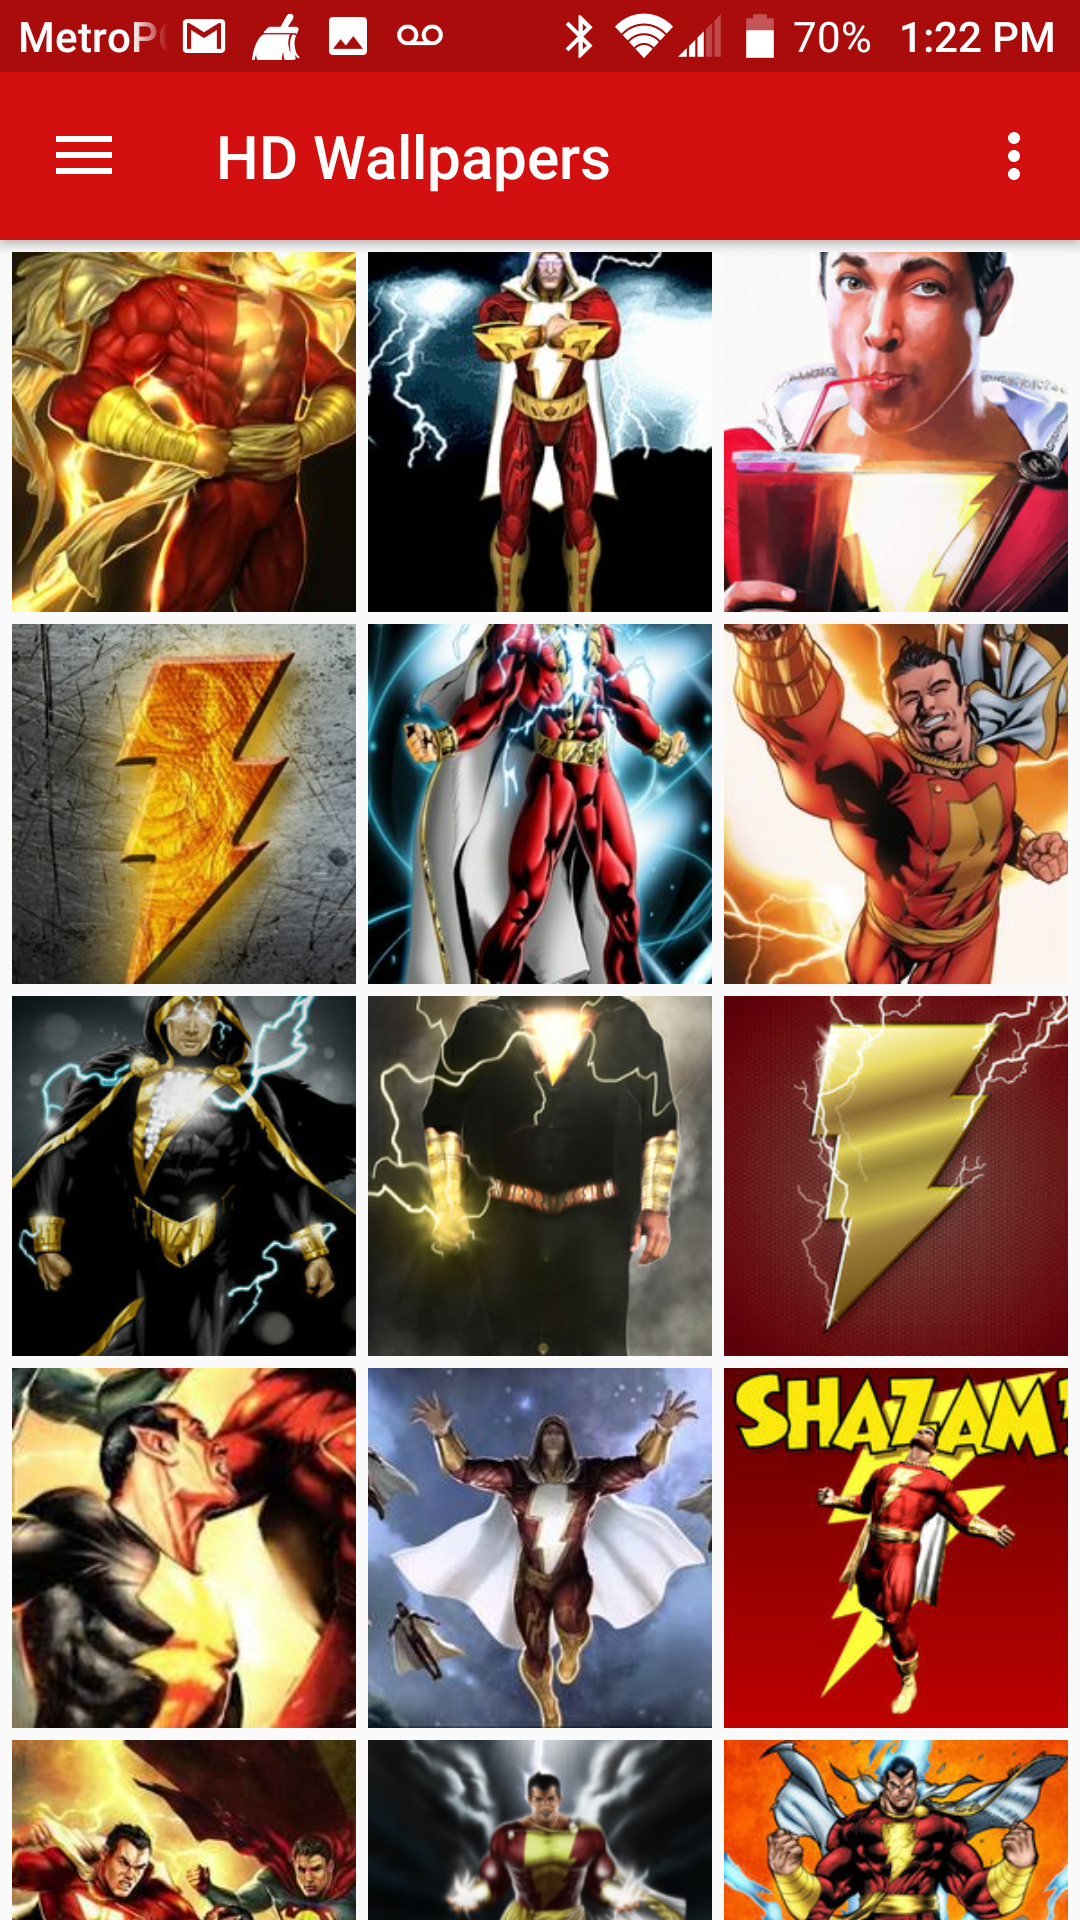 The Shazam Movie Comes Out April 2019 Shazam Wallpapers Hd Has The